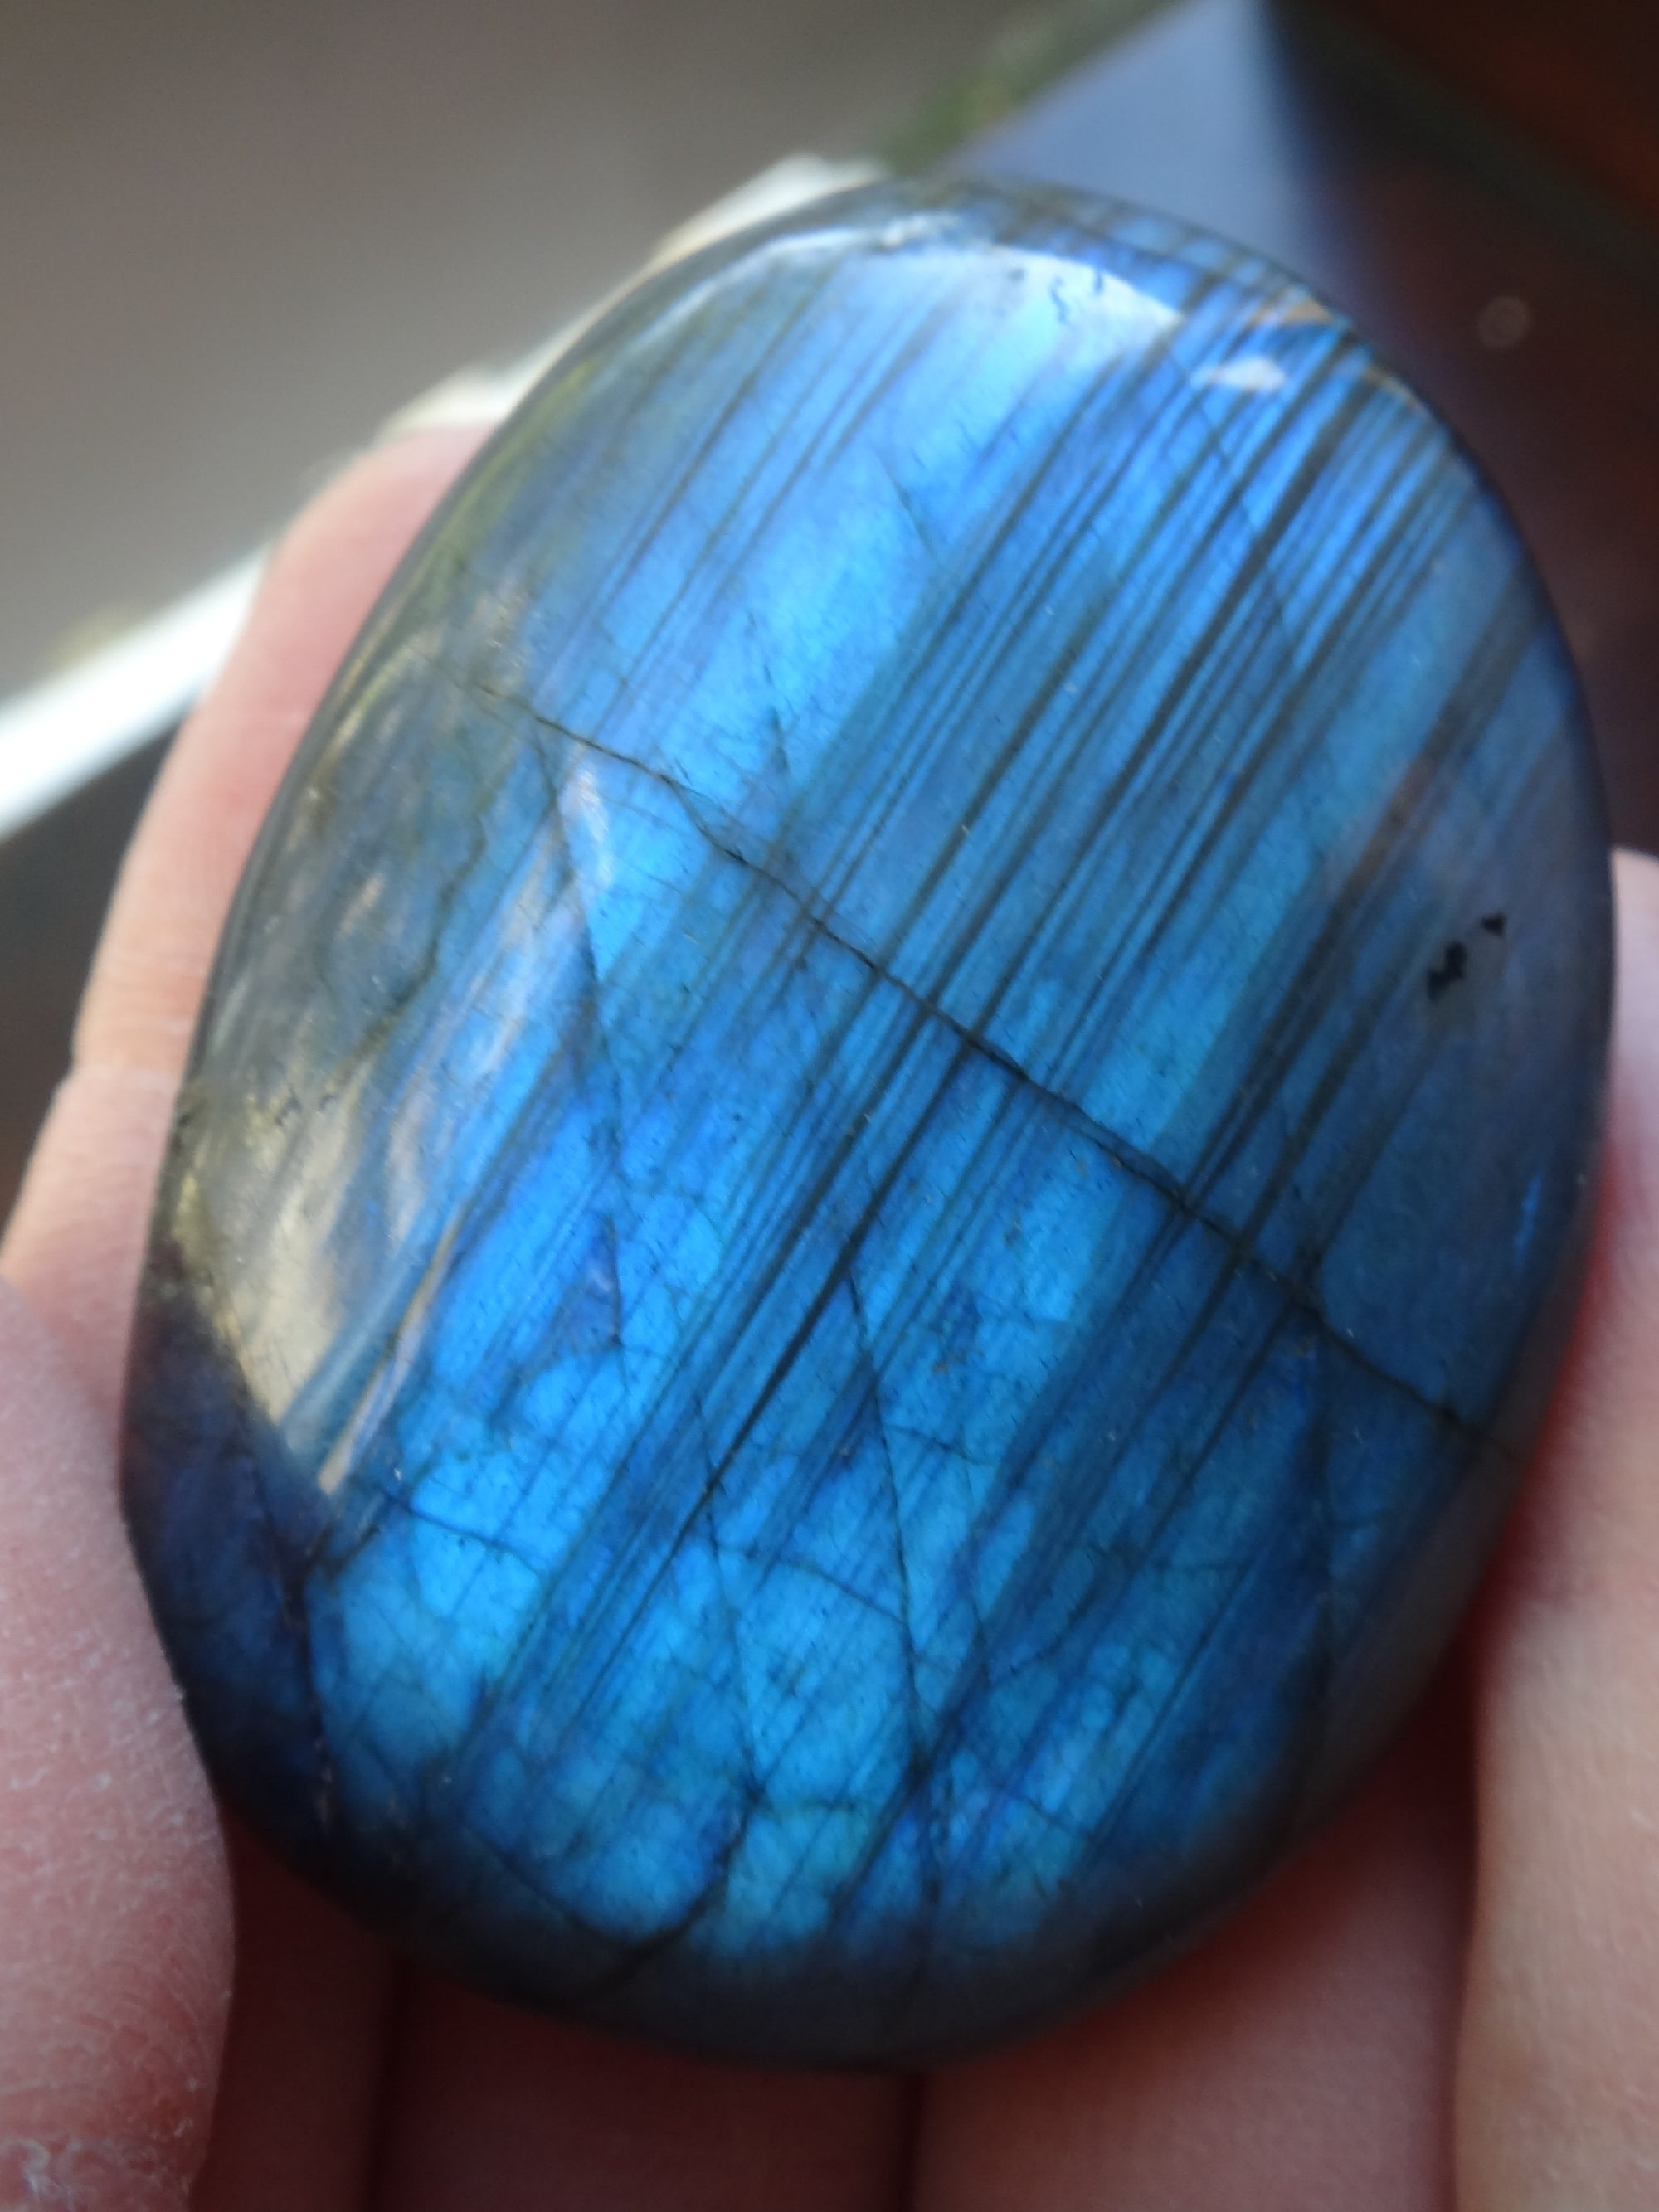 a labradorite palmstone held in a hand. The piece has blue labradorescence. It is showing distinct lamella twinning